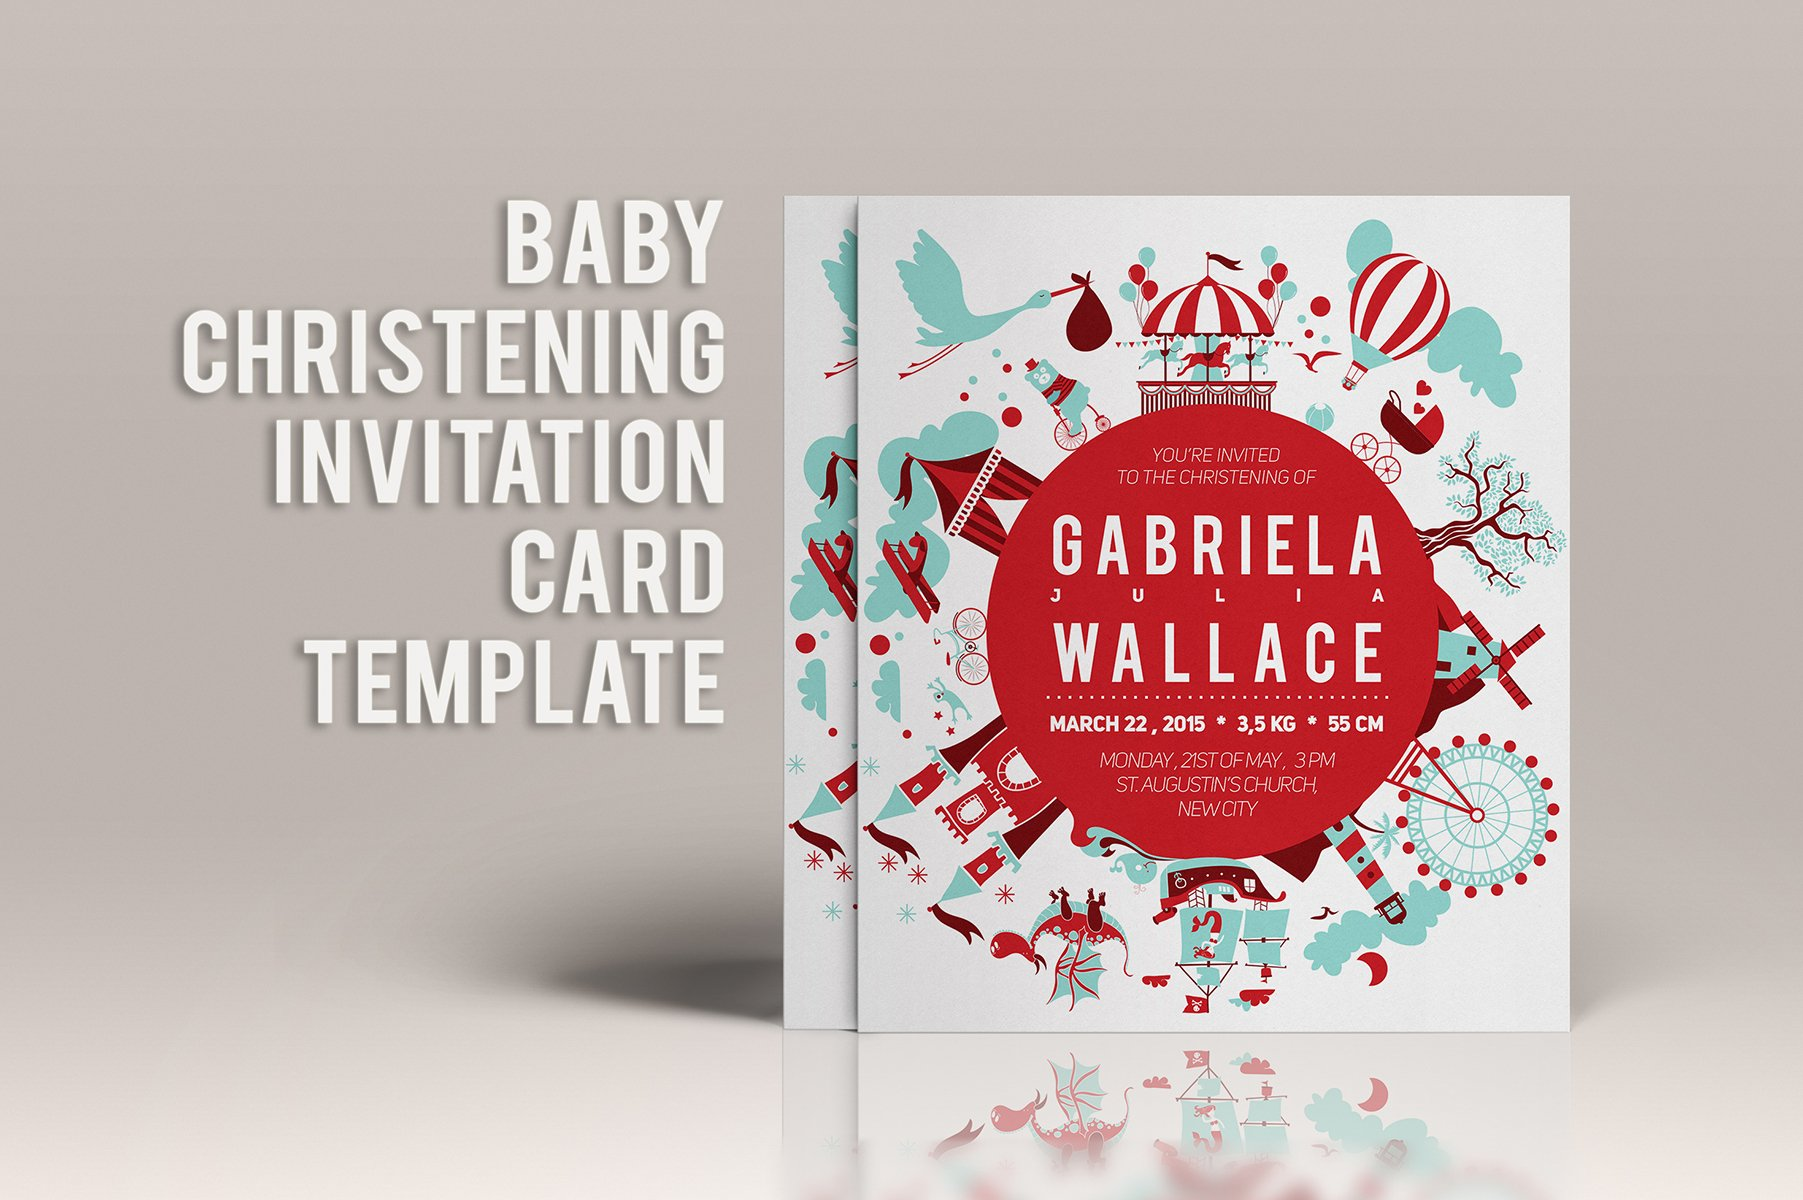 Baby christening invitation template invitation templates baby christening invitation template invitation templates creative market stopboris Gallery